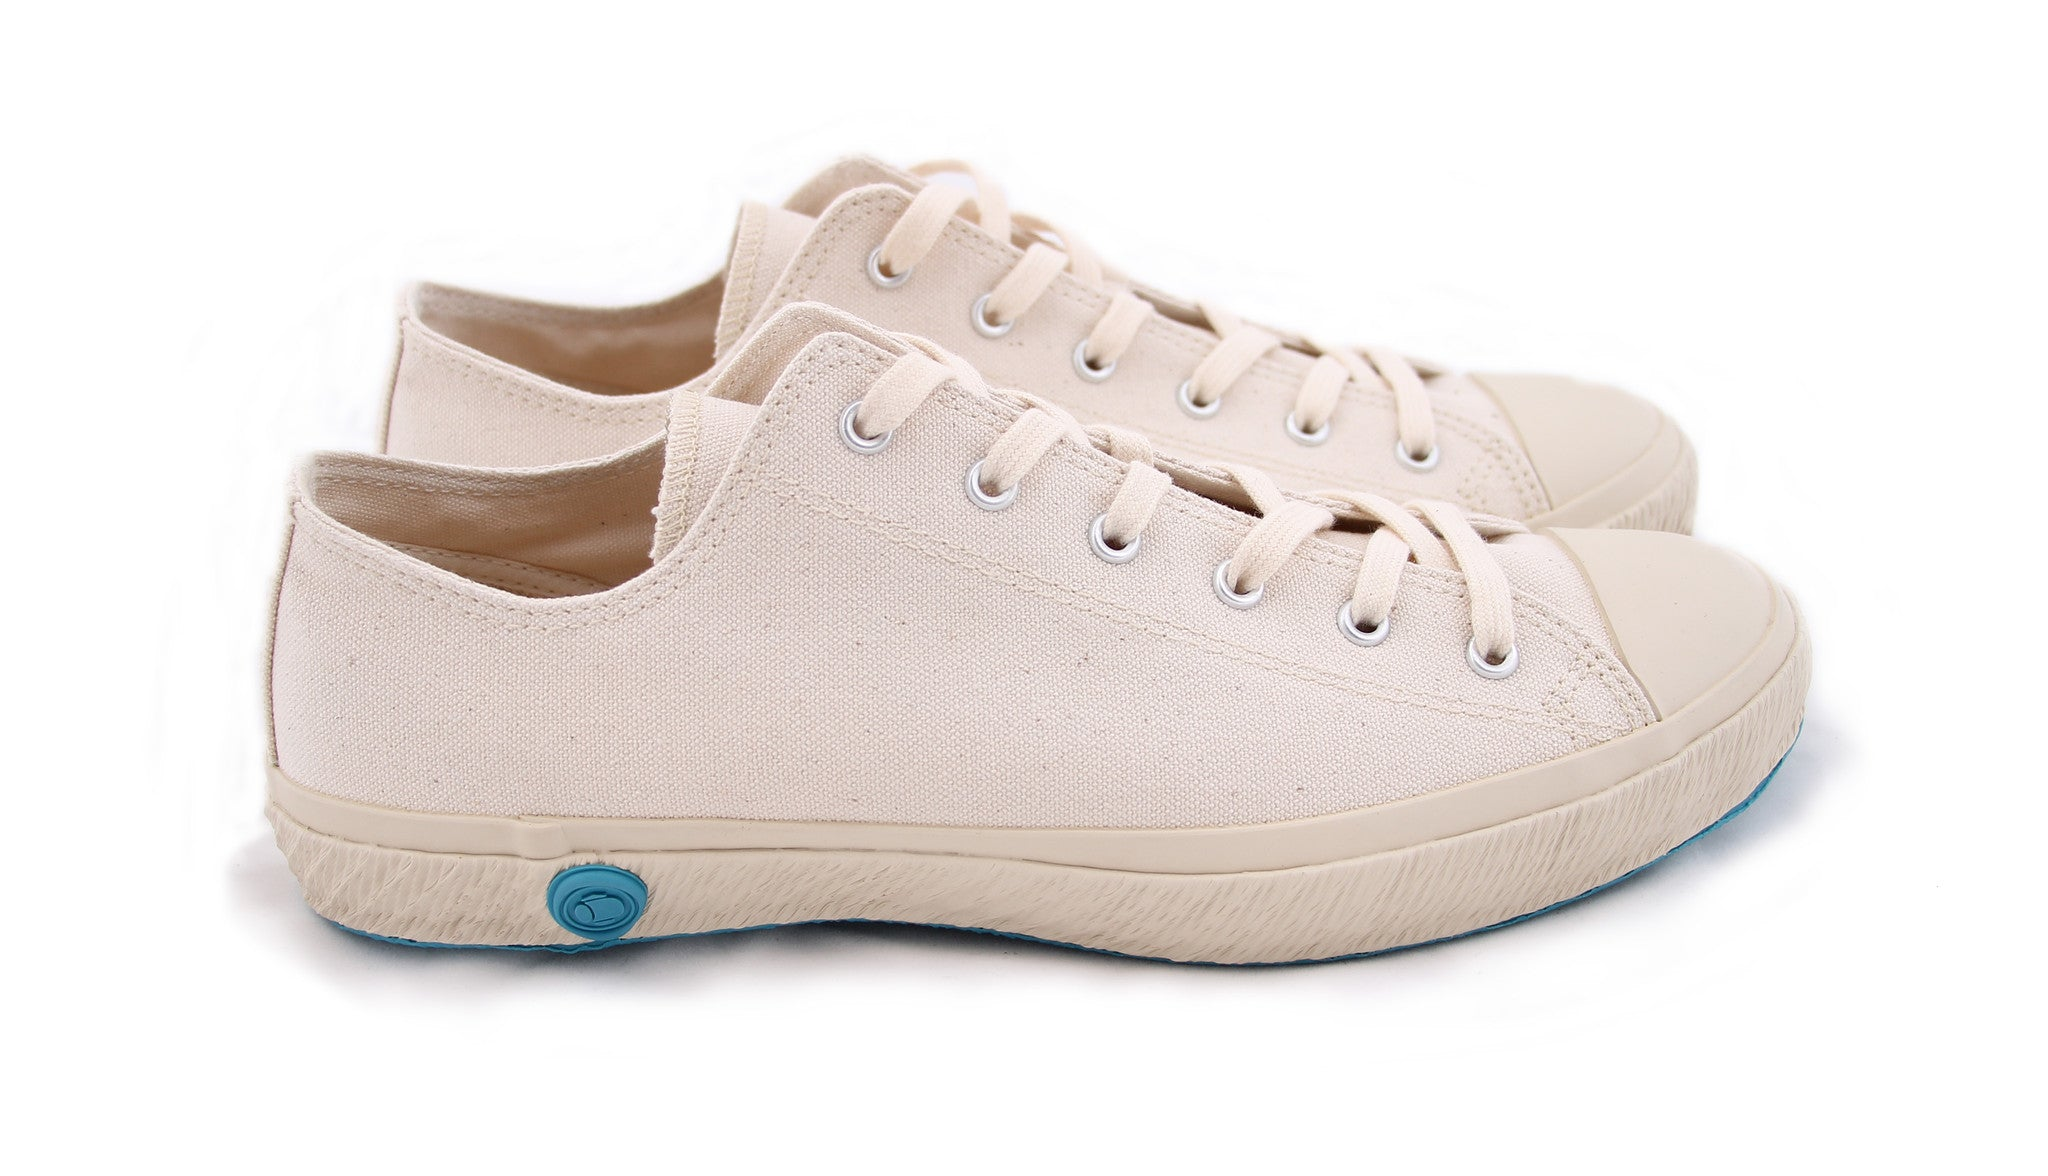 LOW TOP CANVAS SHOES WHITE - COSMOTOG